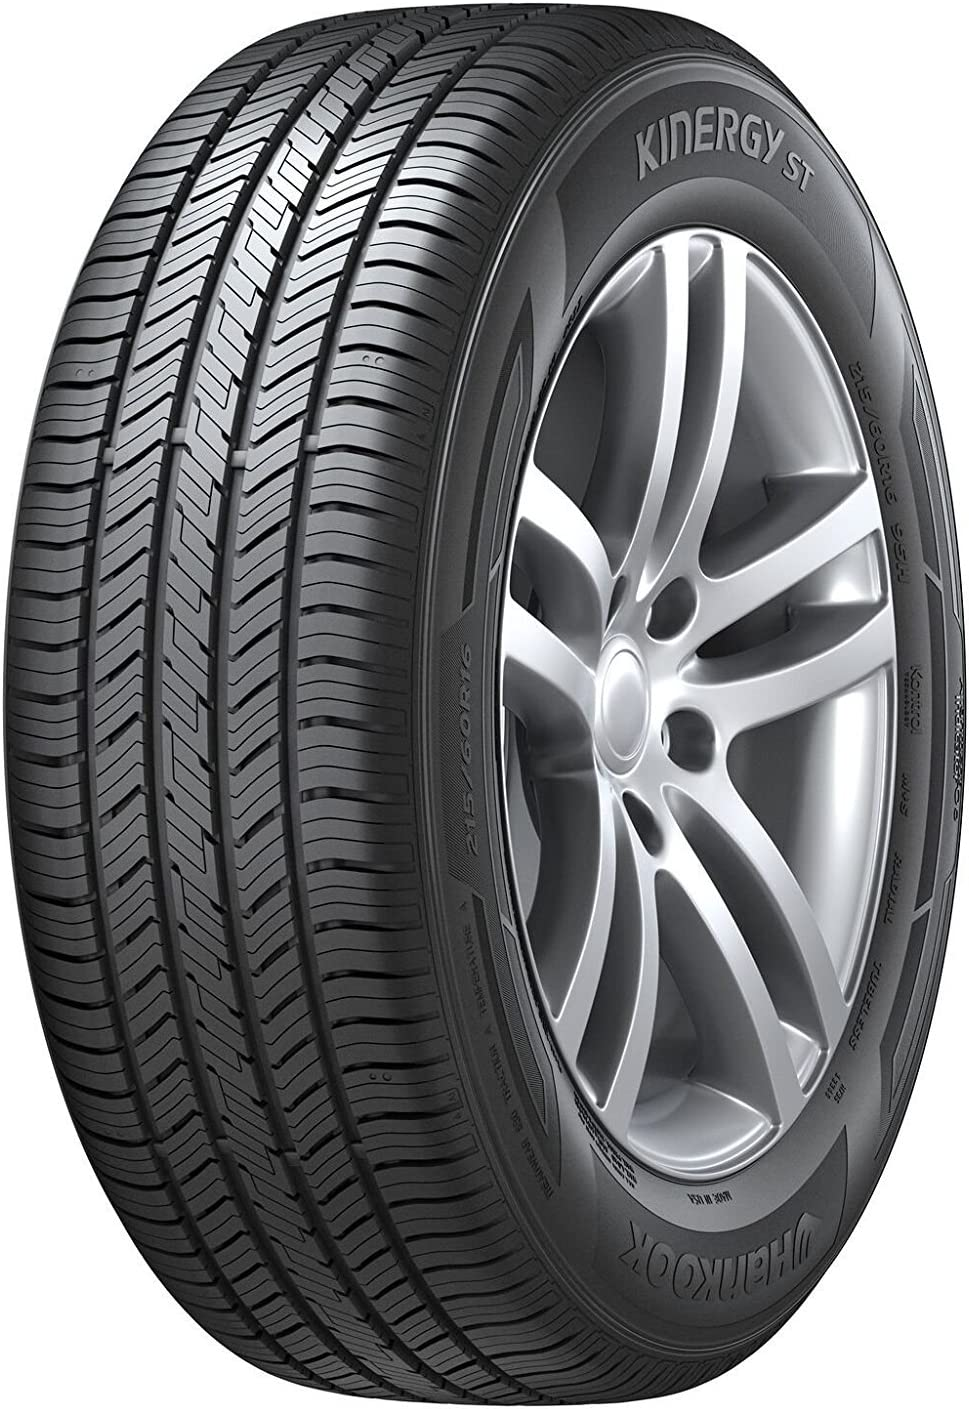 Outstanding Hankook H735 KINERGY ST Touring Radial 225 70R15 Popular overseas - 100T Tire